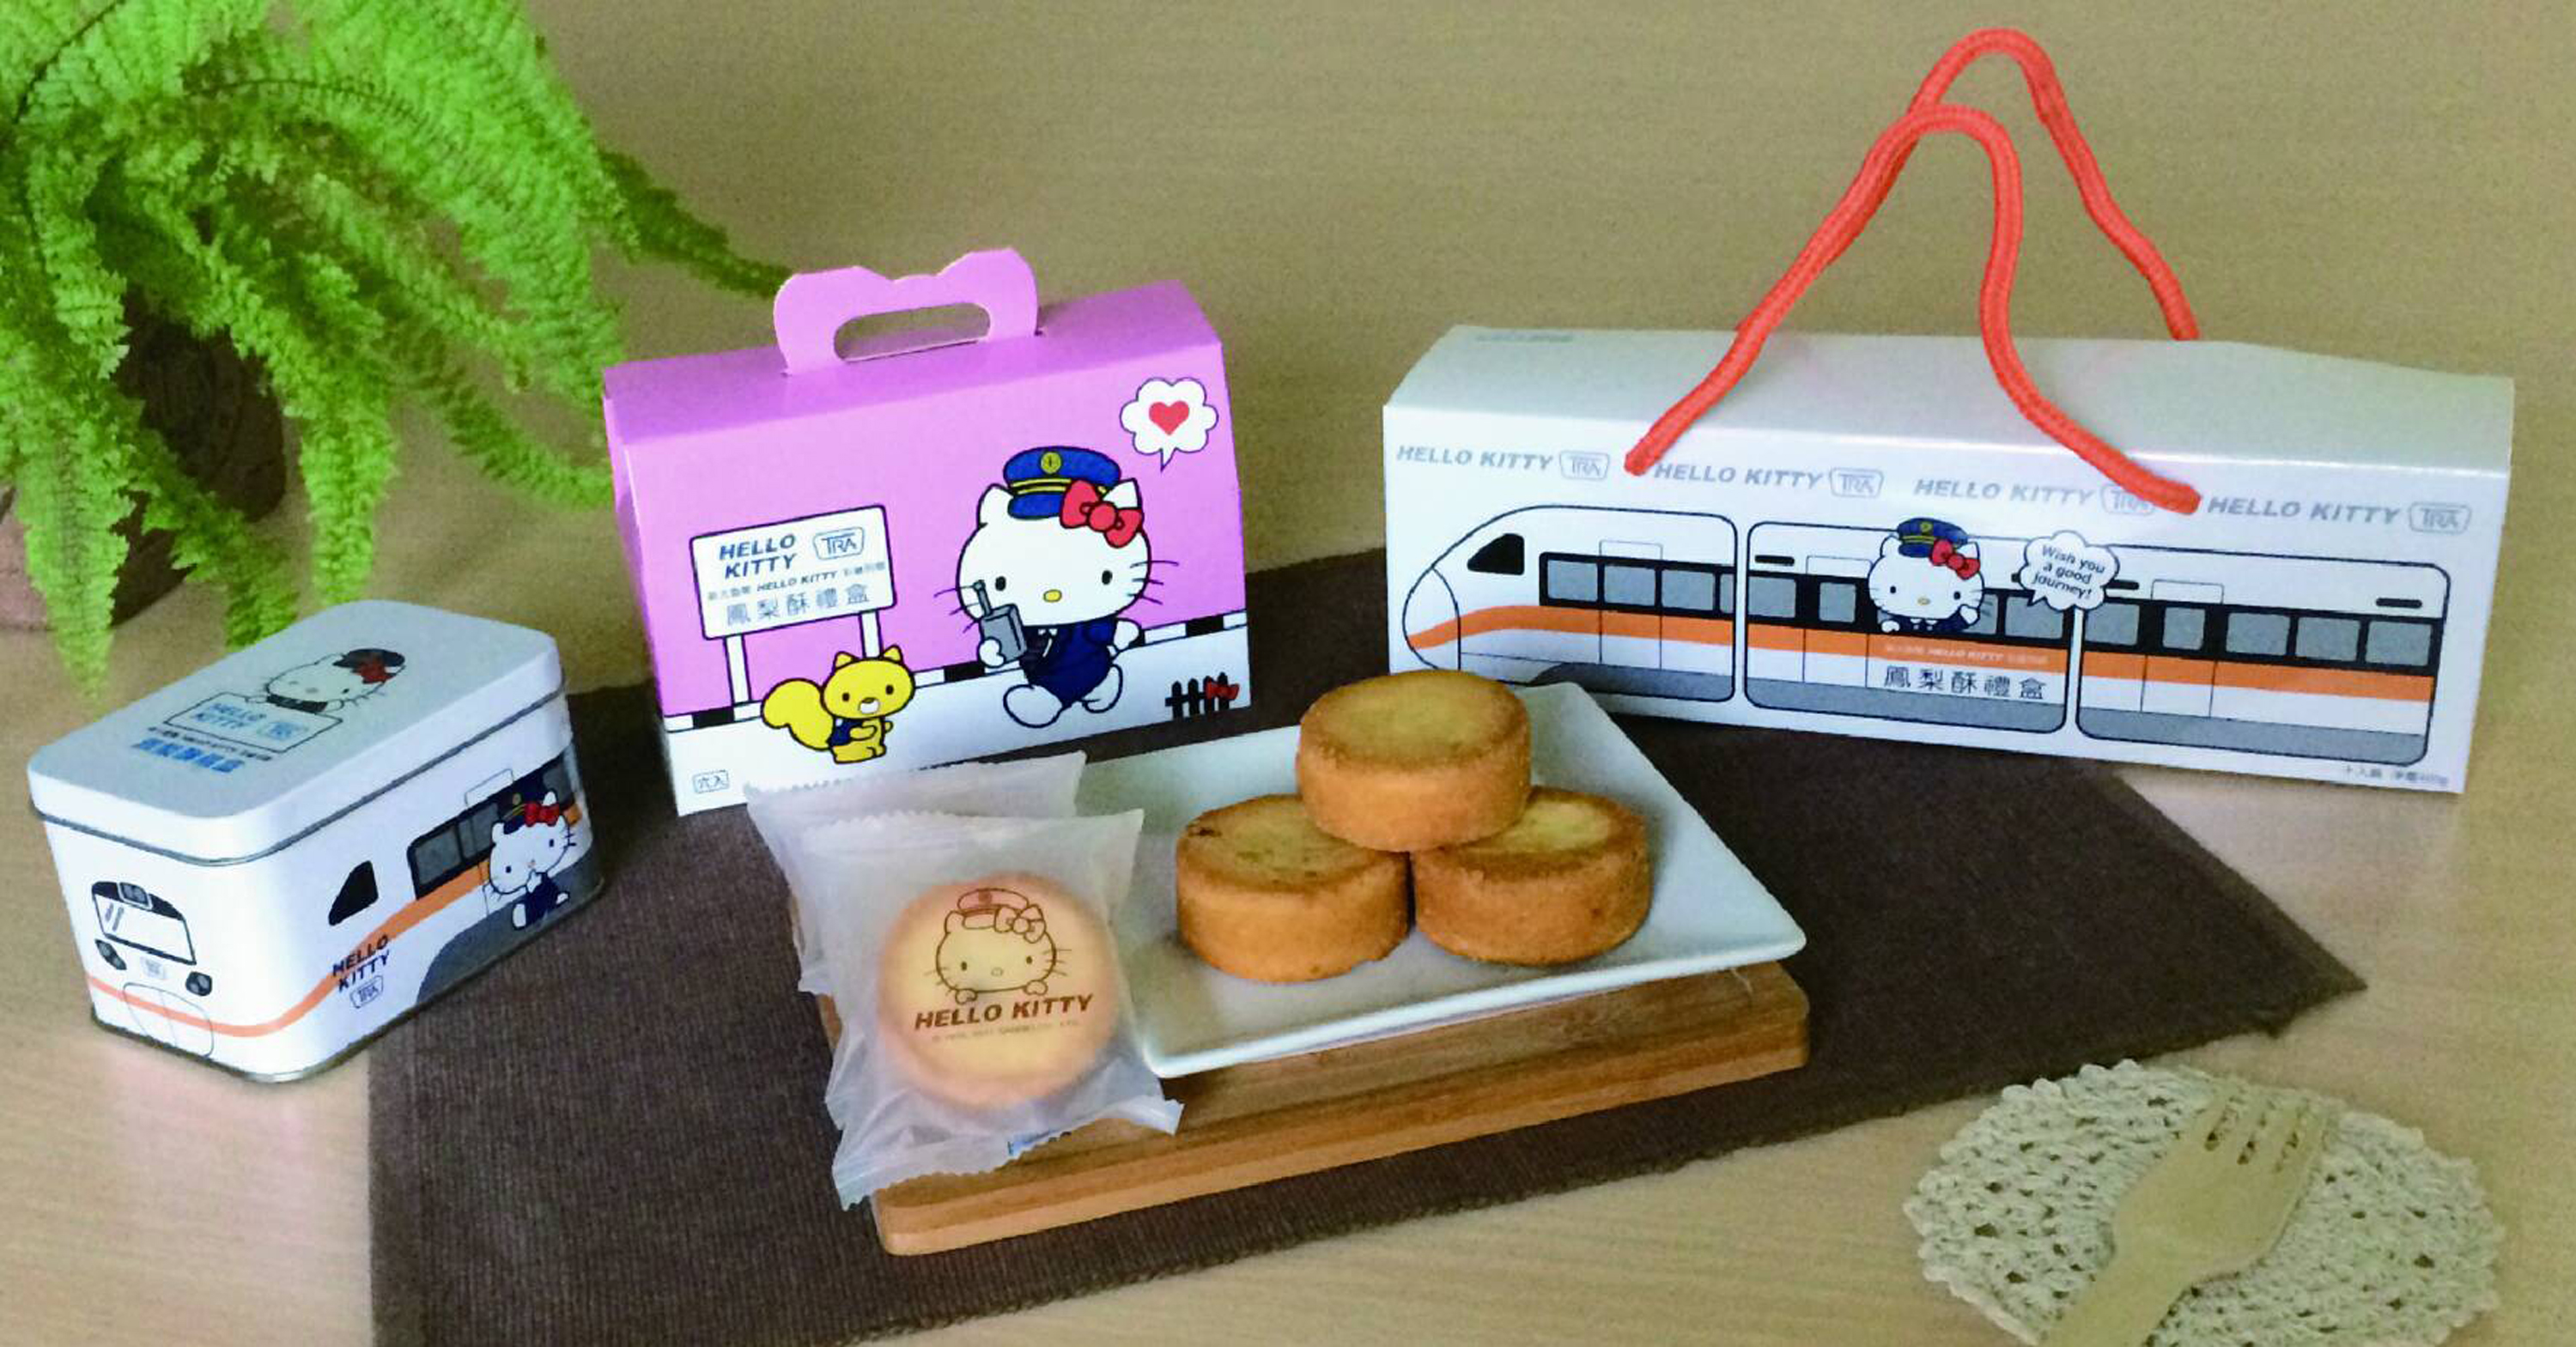 TRA introduces Hello Kitty-themed pineapple cake gift boxes for the Mid-Autumn Festival. (Source: CNA)